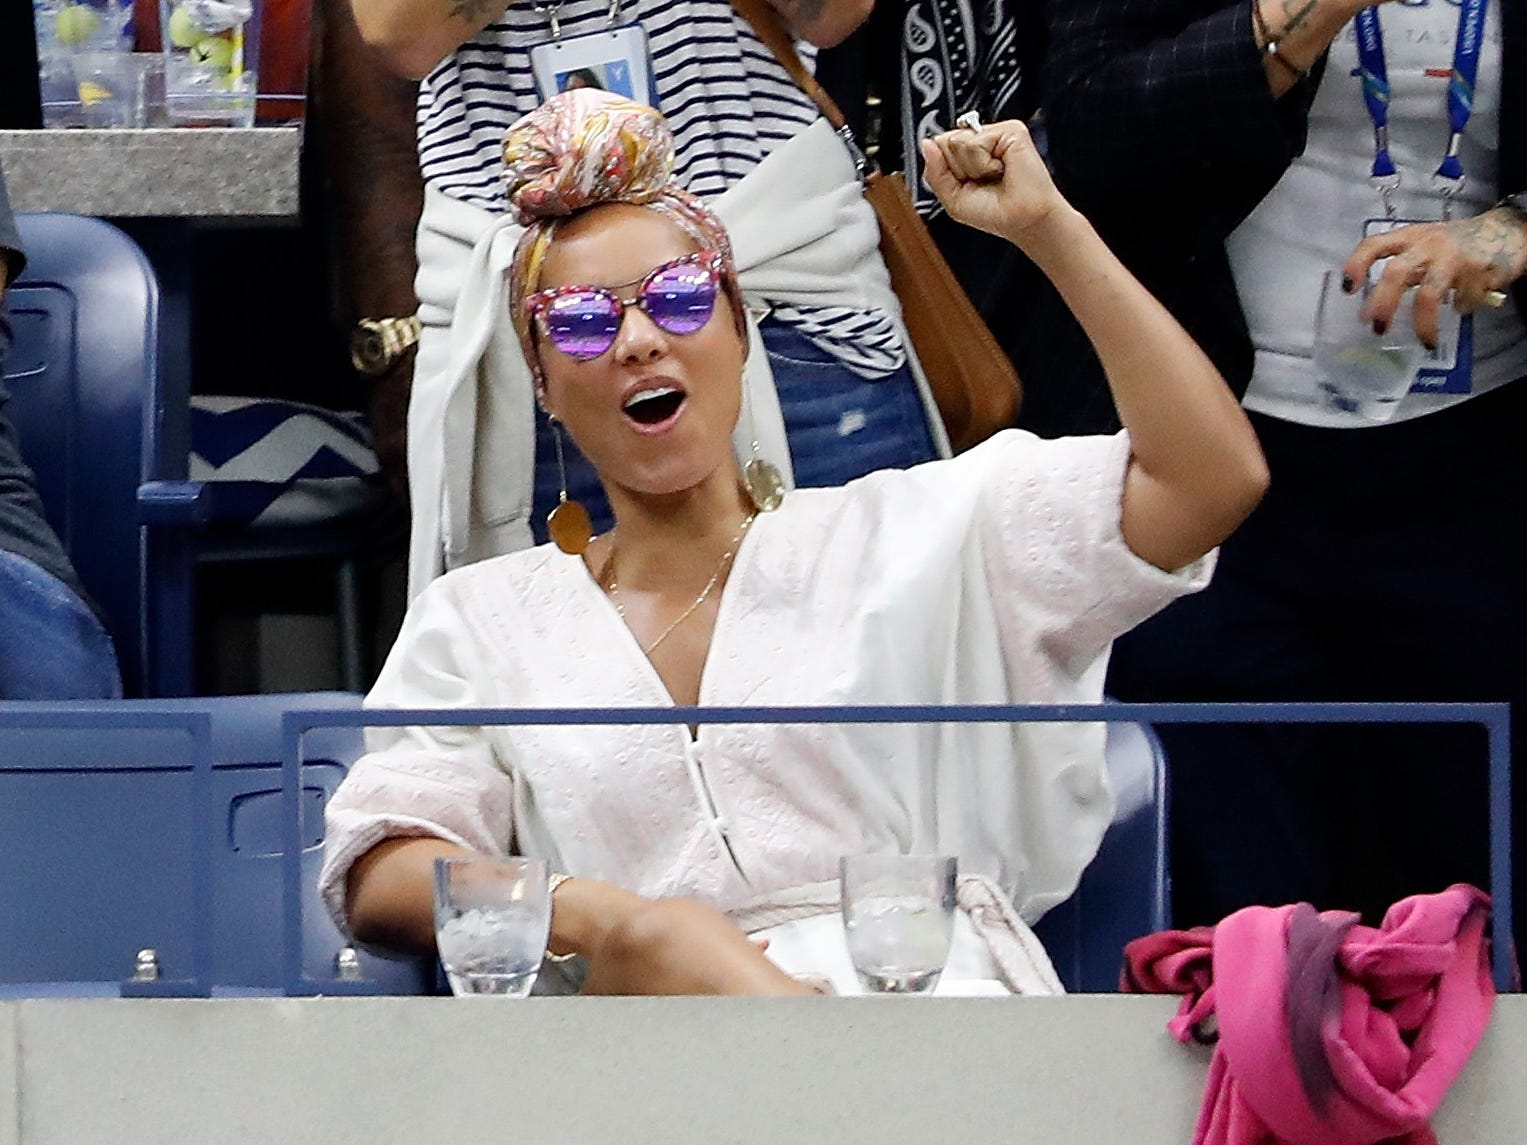 Singer/songwriter Alicia Keys watch the women's final between Serena Williams and Naomi Osaka.